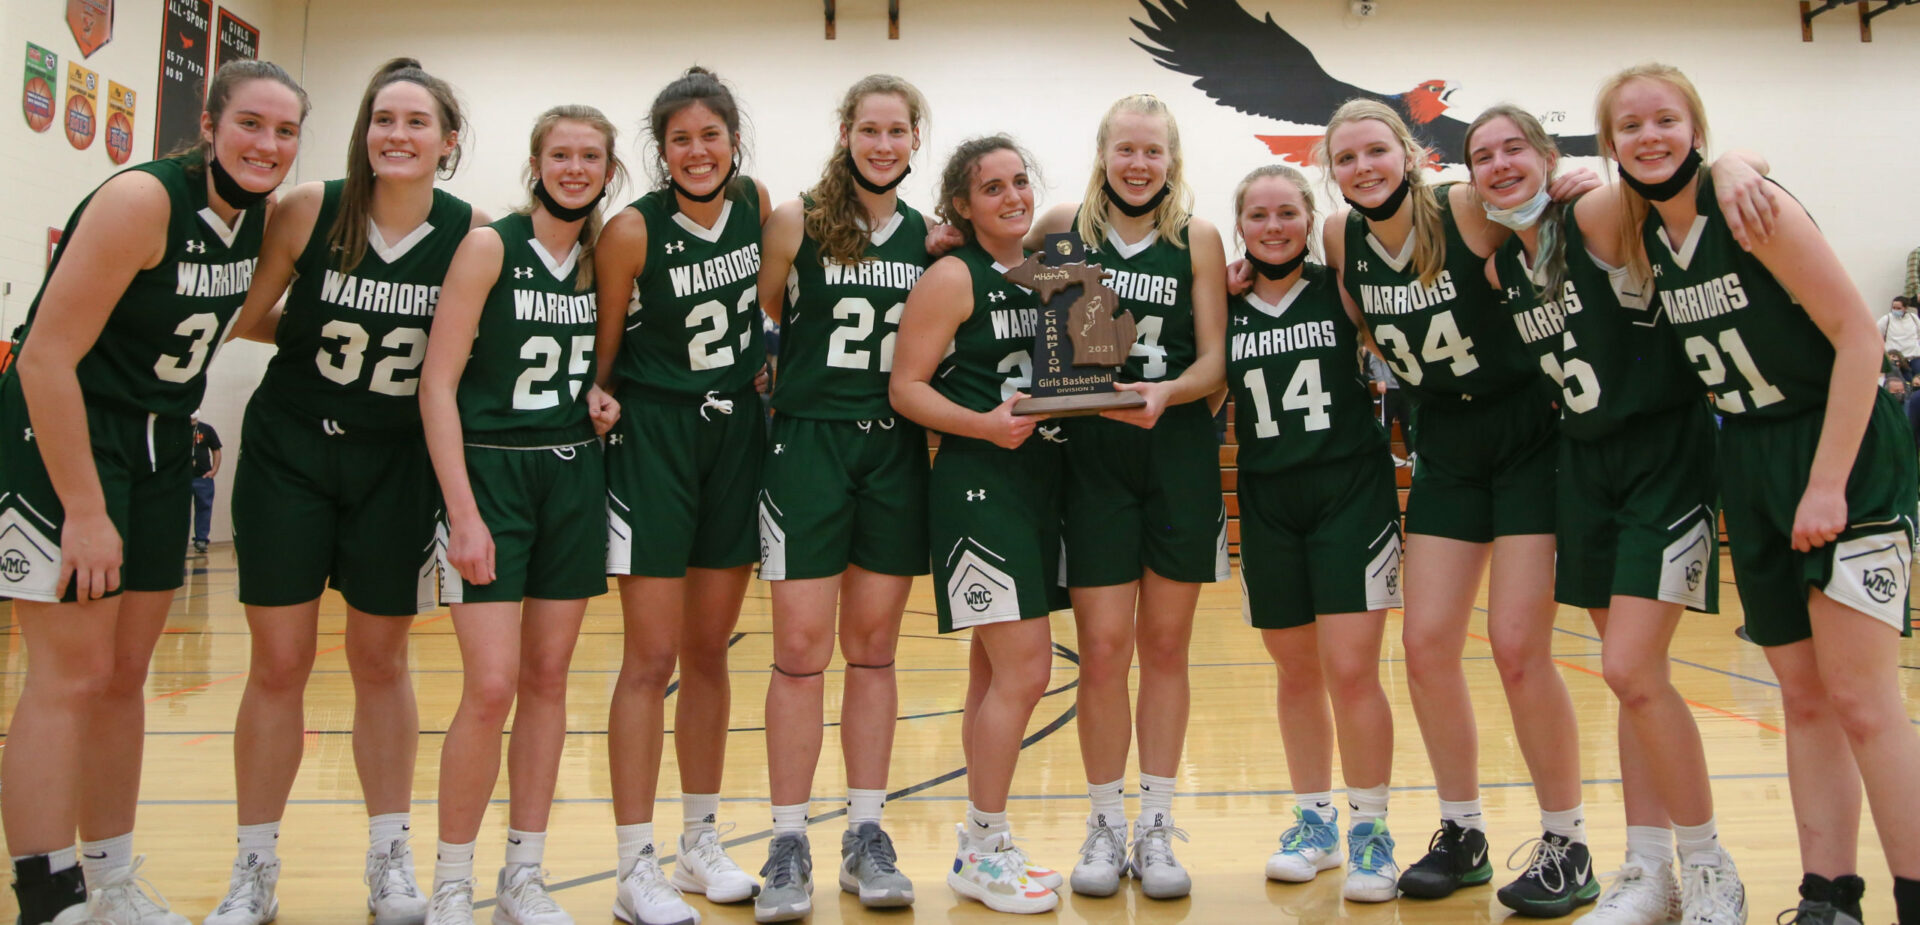 WMC girls basketball team captures D3 district title with 51-17 victory over North Muskegon